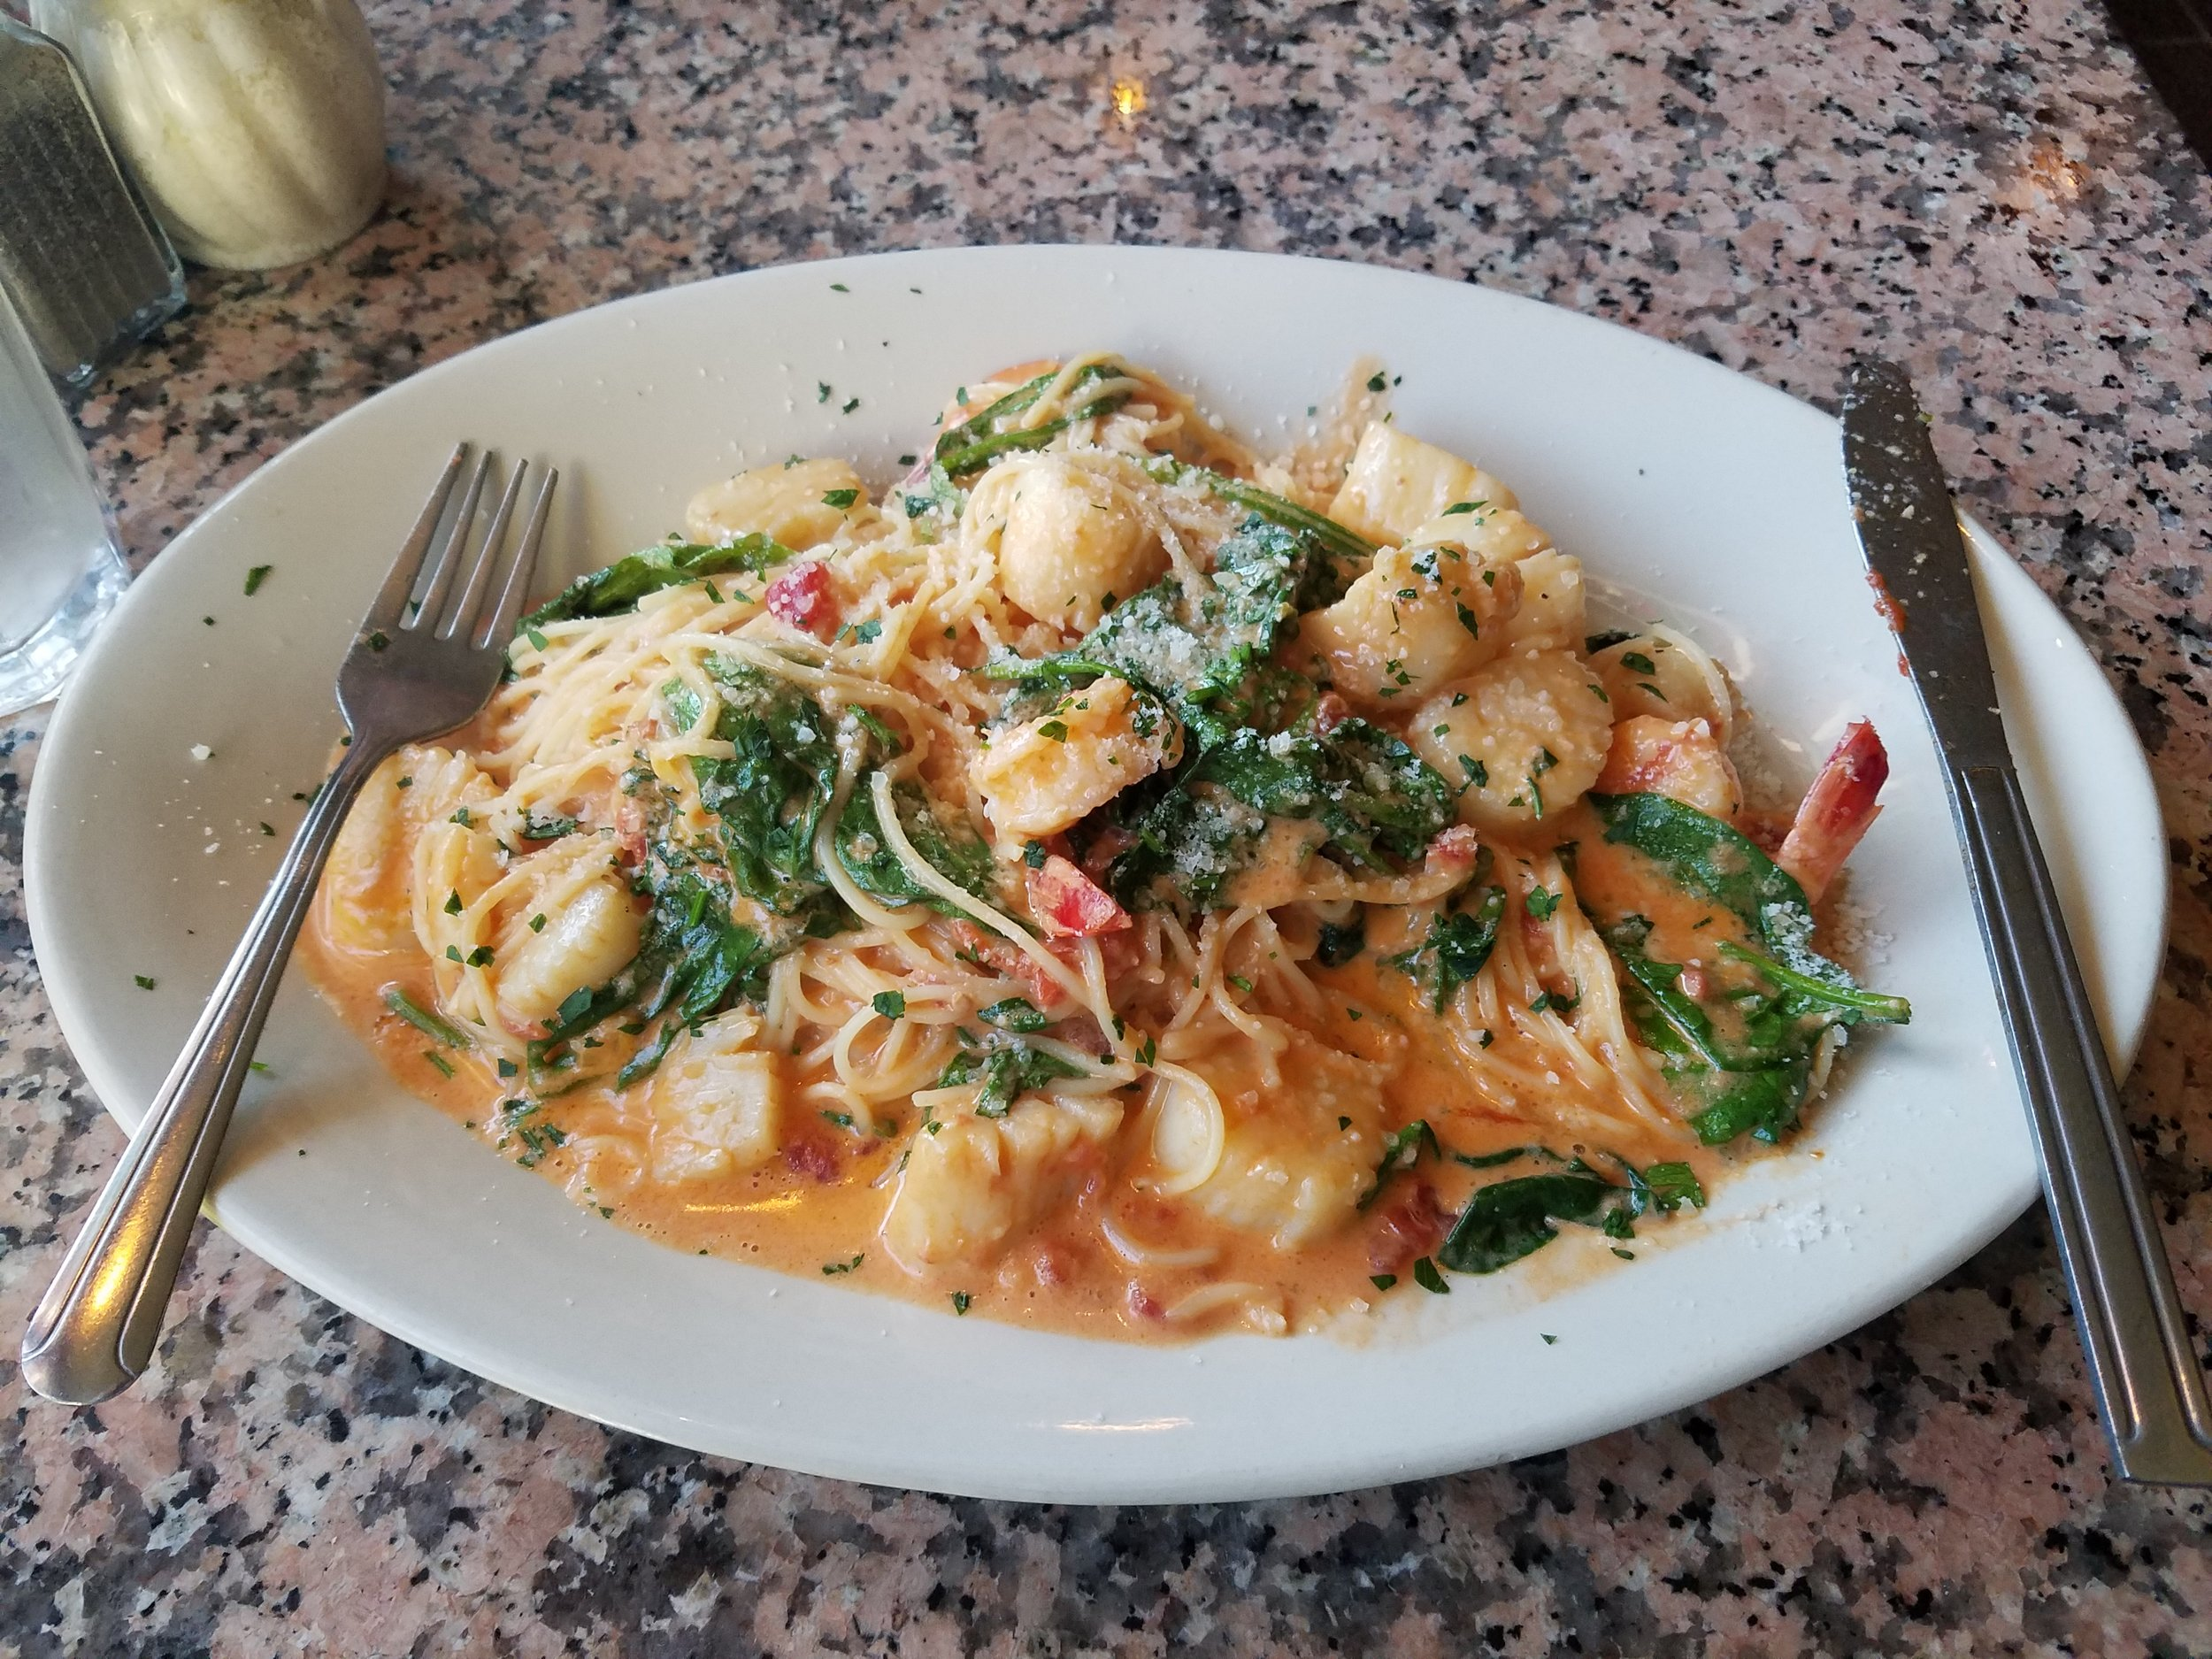 Photo by Sarah Paust '20  Pasta E Basta's spaghetti with scallops, shrimp and spinach in a tomato cream sauce, ordered by the author.